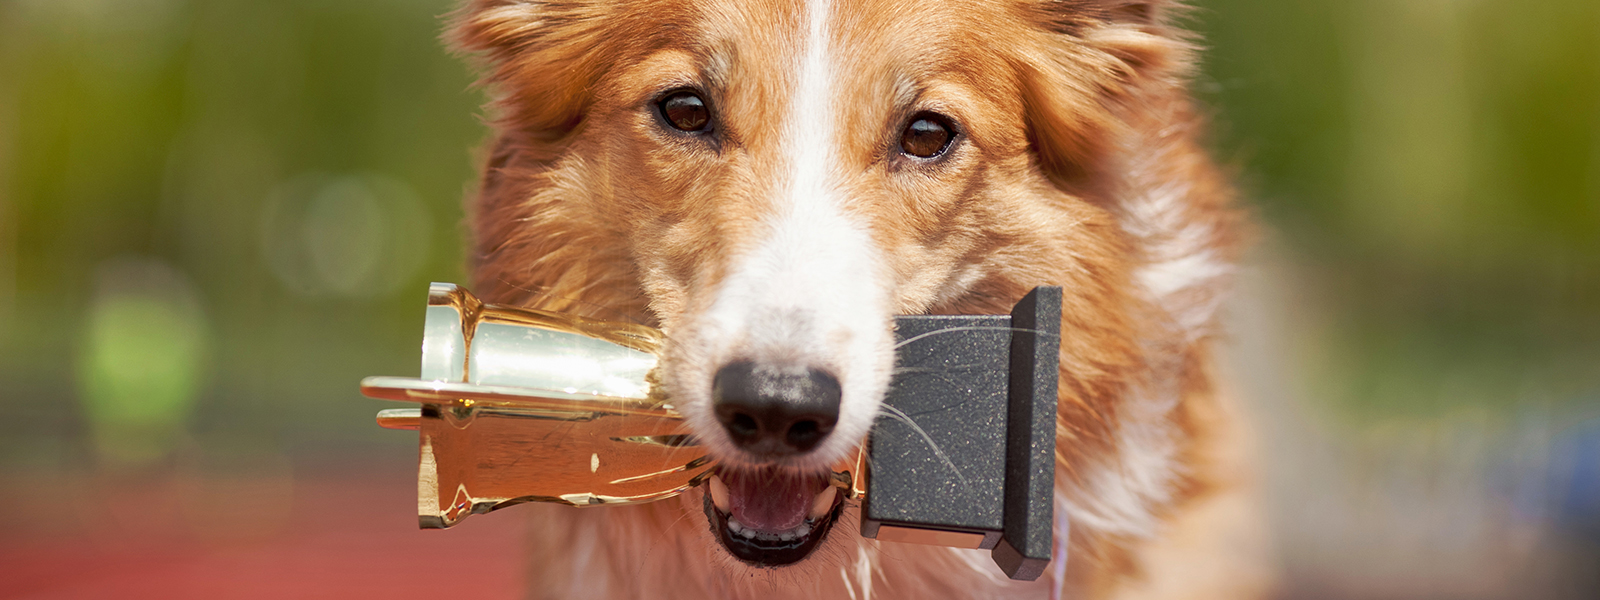 Dog Holding a Trophy in Its Mouth | Woodruff